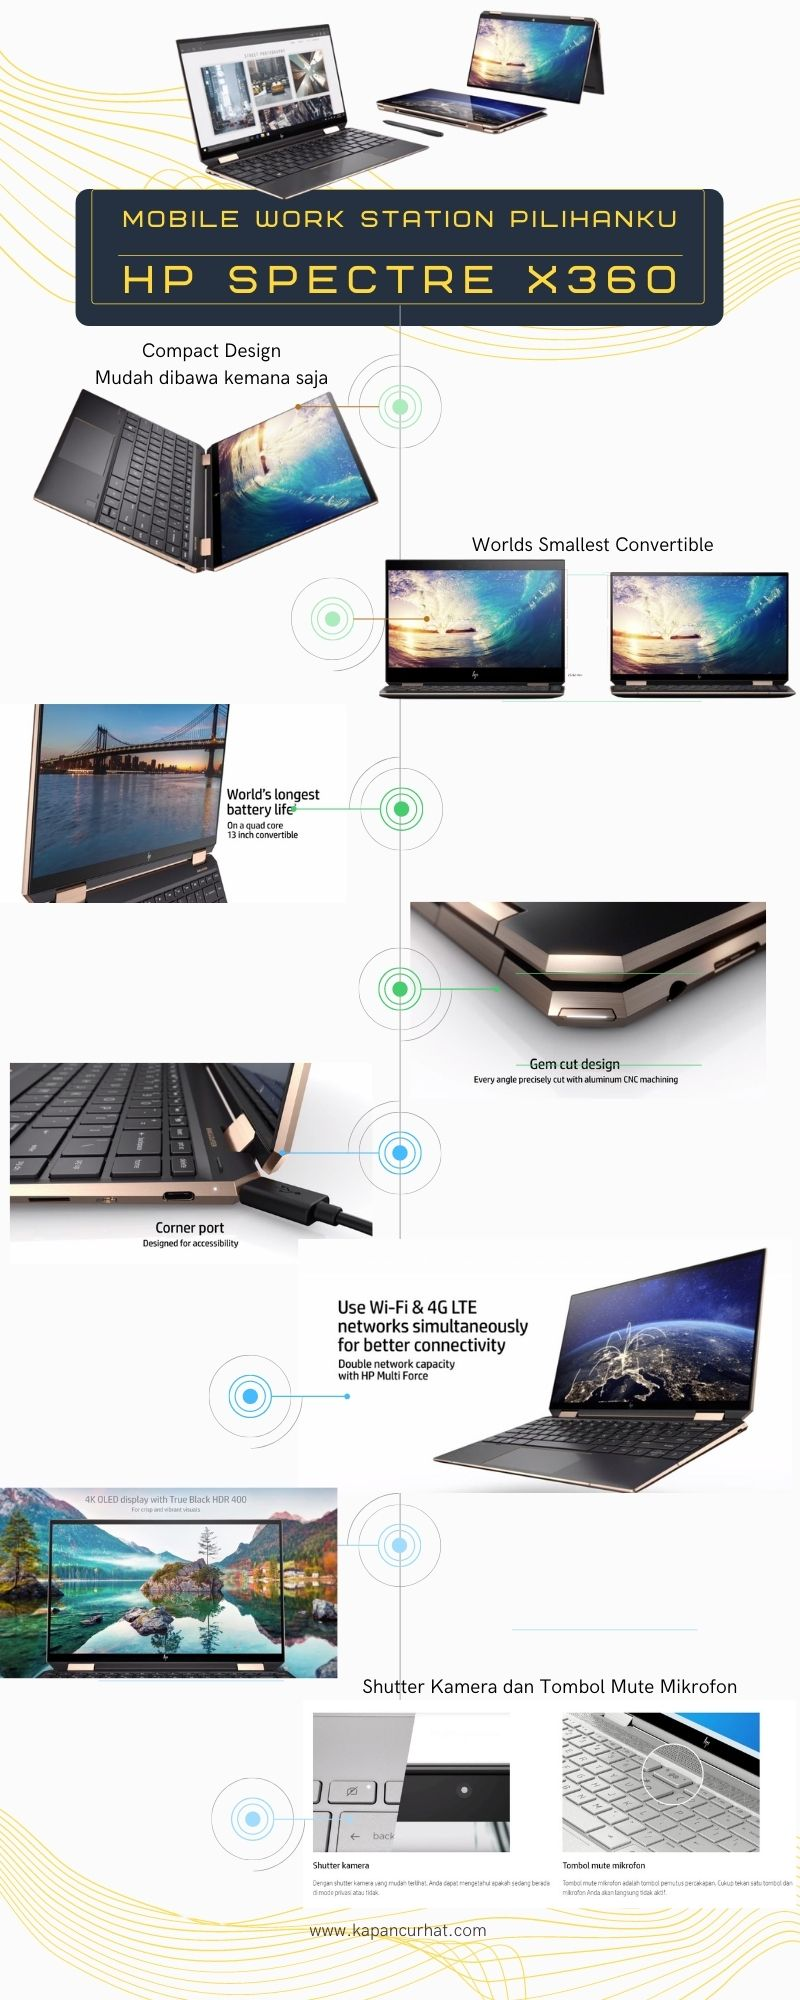 mobile work station hp spectre